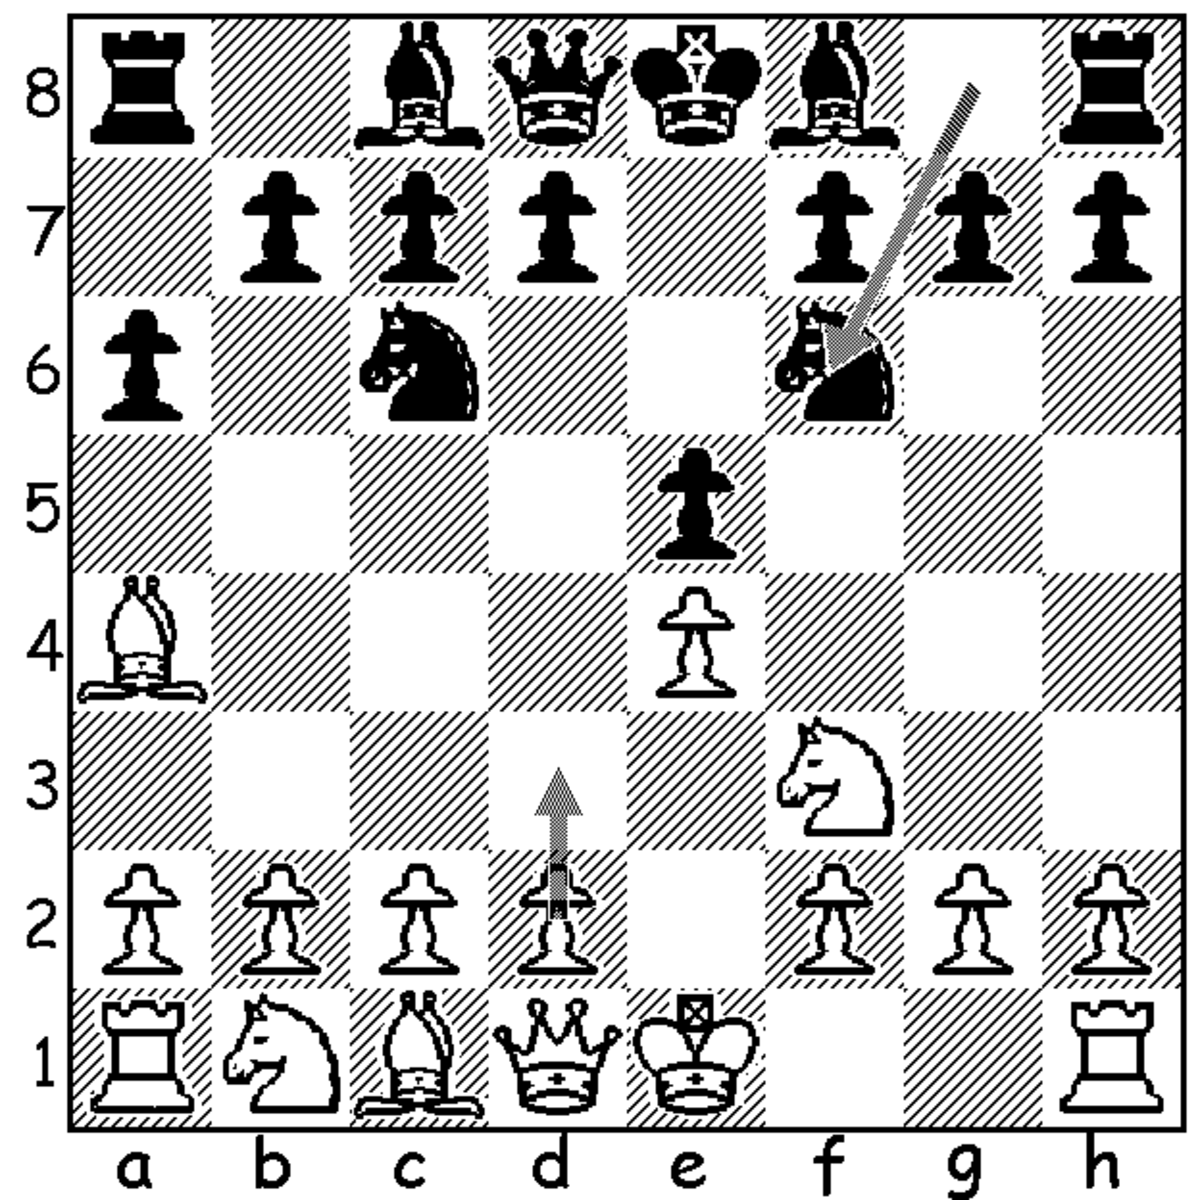 This shows white's possible option of 5.d3 following blacks 4...Nf6, avoiding black's option to play into the Open Ruy Lopez (5.0-0 Nxe4) but allowing a quick 5...d6, 6...g6, and 7...Bg7 which is thought to equalize rather easily.